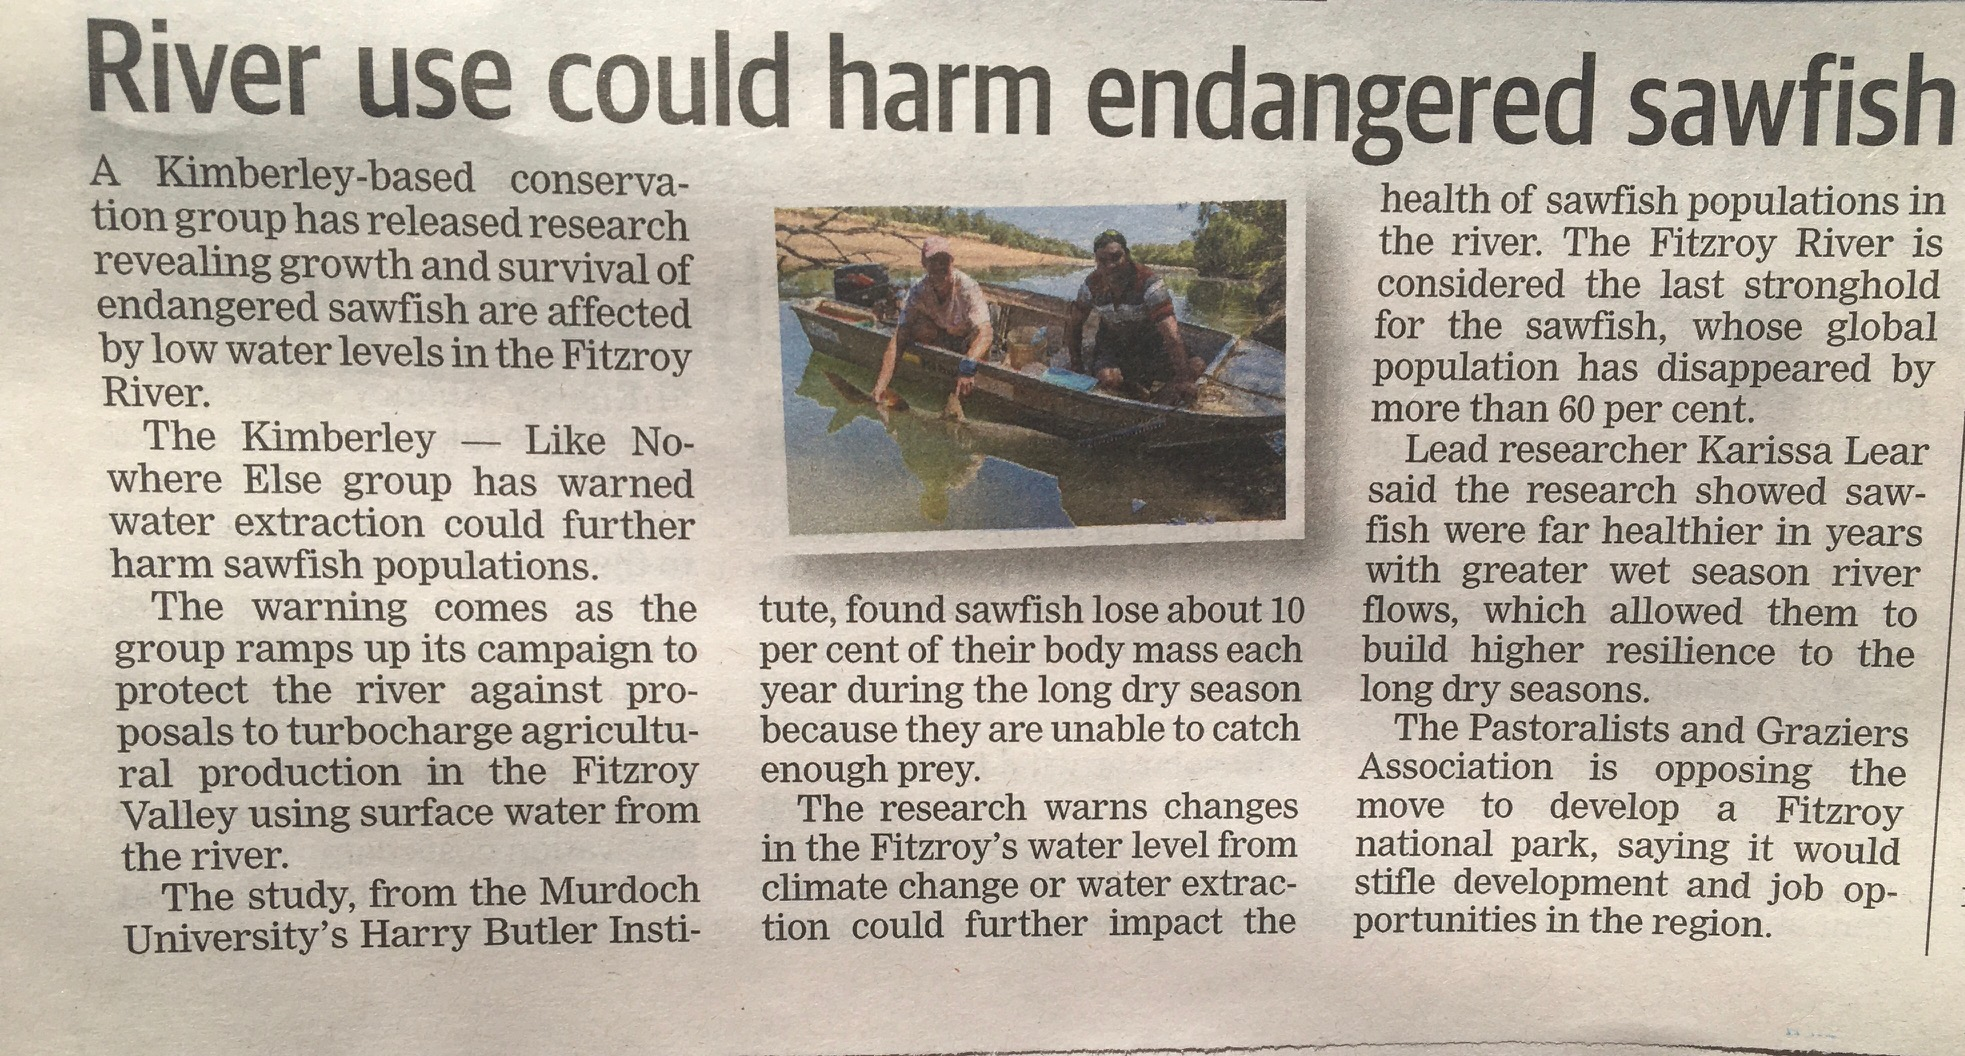 The study was reported in The West Australian on 20 Oct 2020